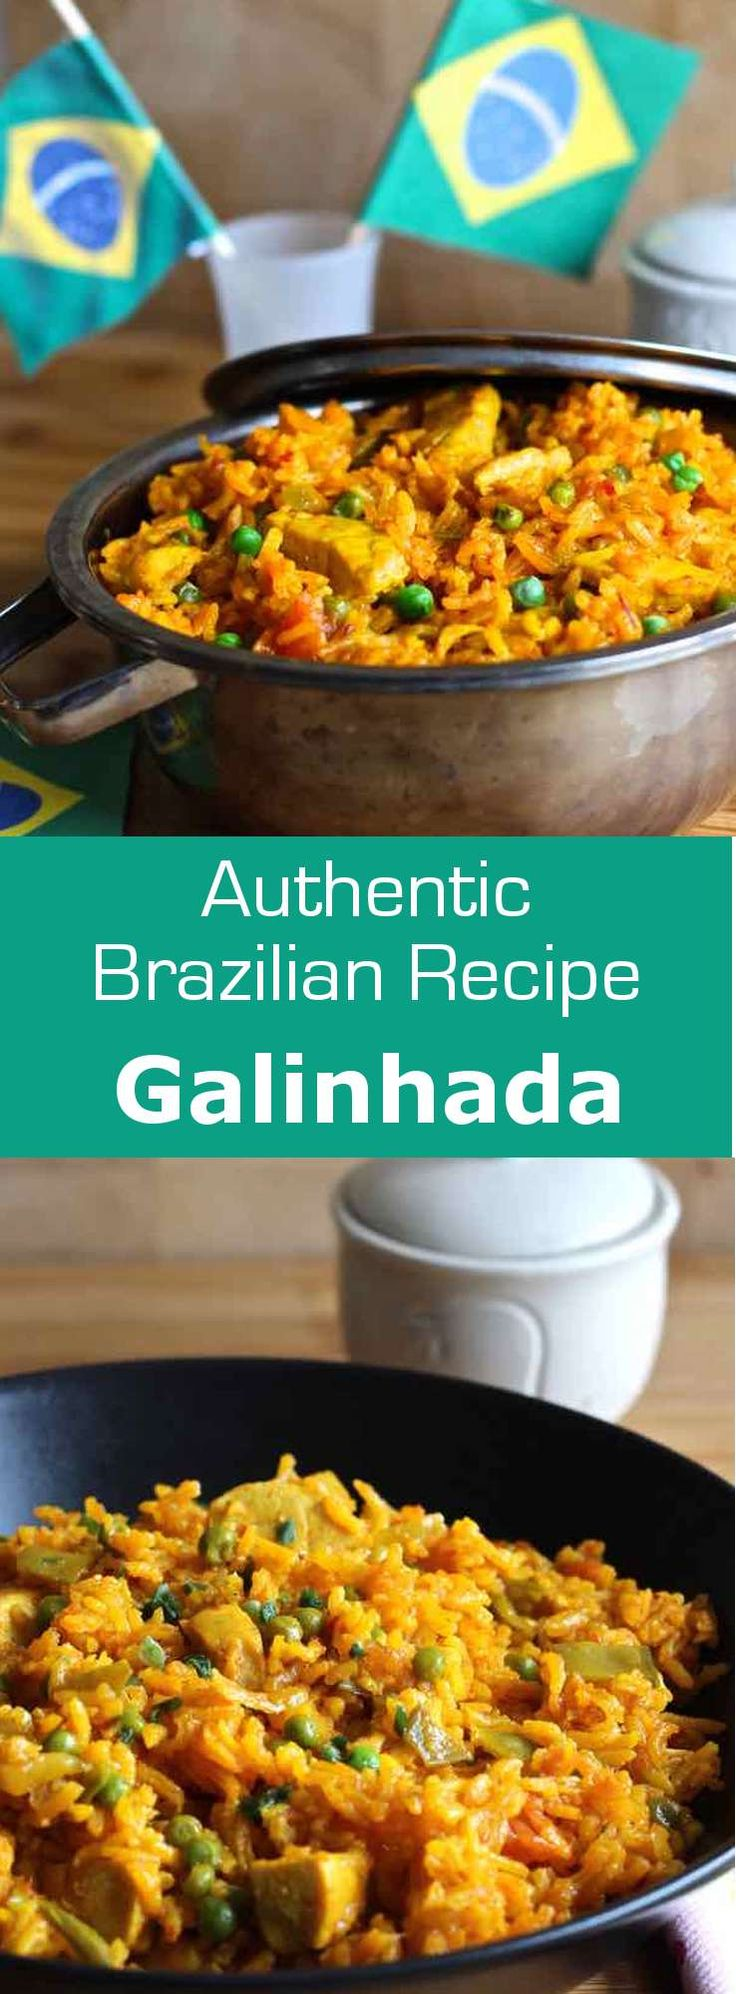 Galinhada is an emblematic Brazilian dish prepared with rice and chicken whose yellow color comes from saffron or turmeric. #brazil #196flavors